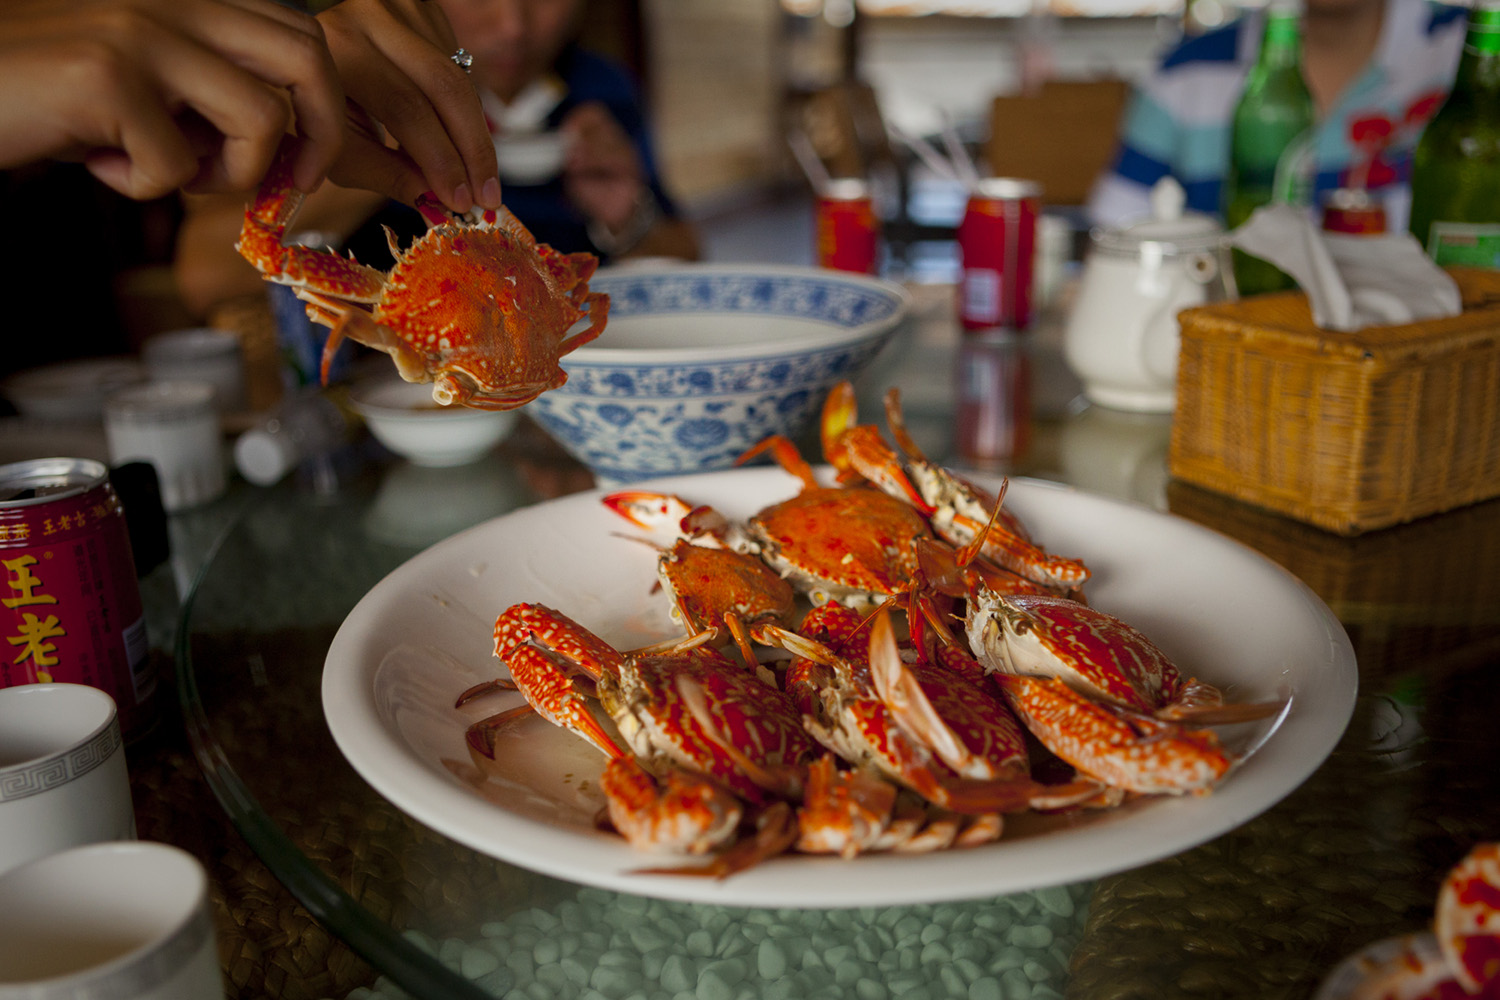 Fresh crabs at Haitang Bay Impression Seafood Restaurant. Image by Dora Whitaker / Lonely Planet